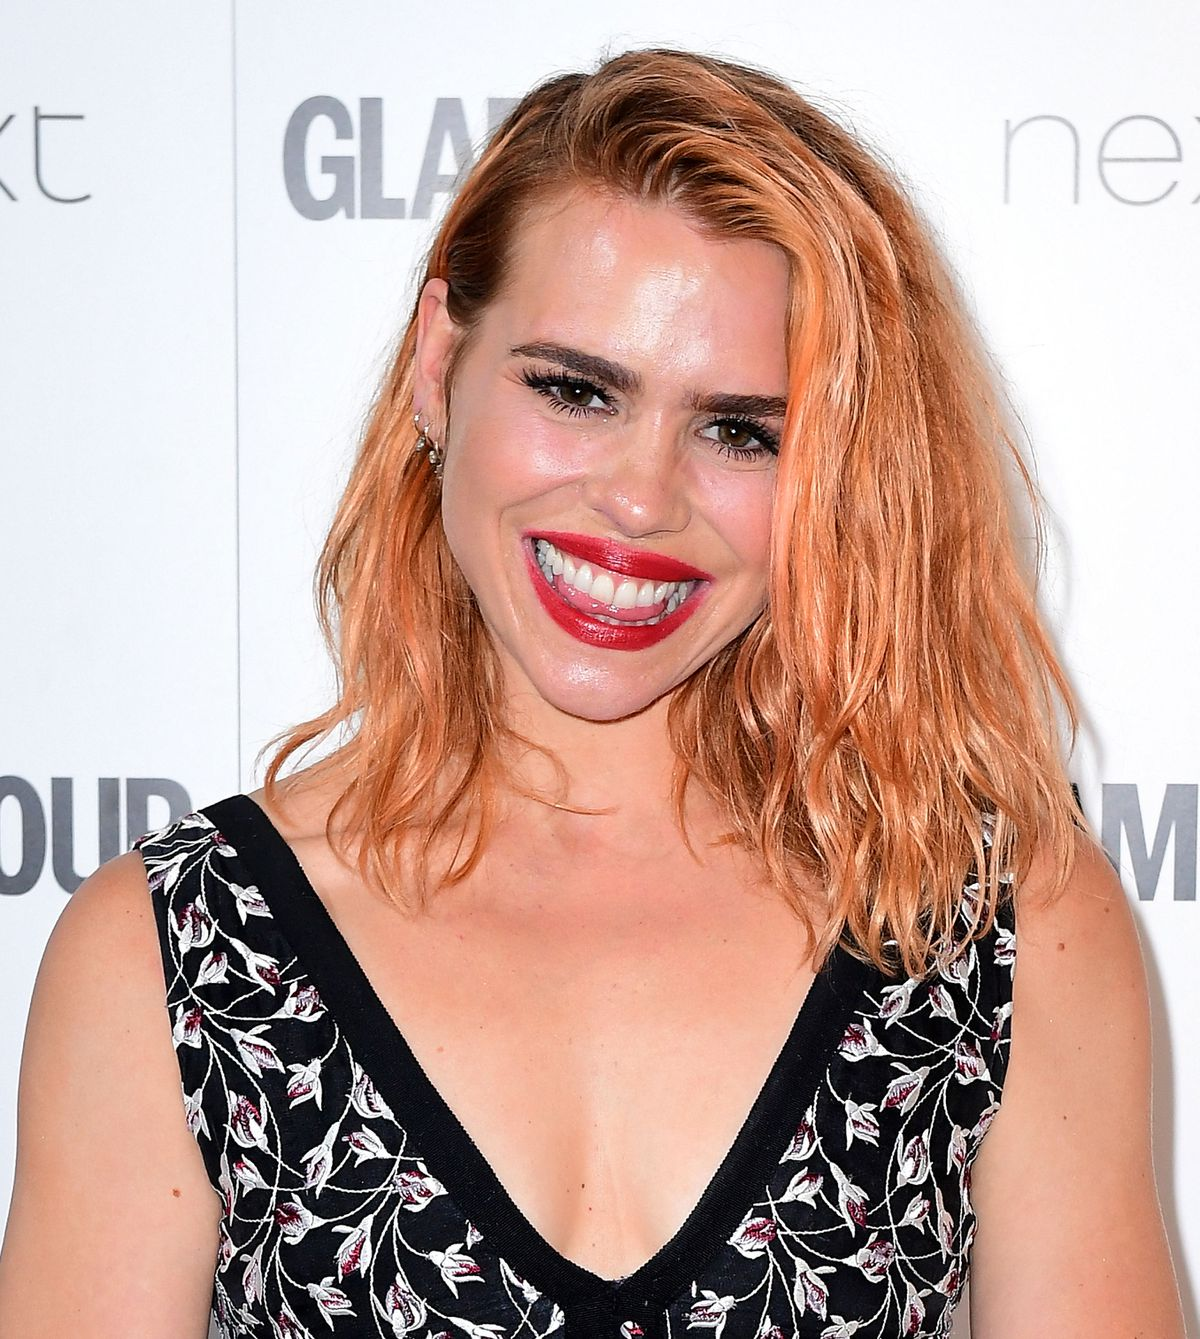 Billie Piper is set to star in the movie